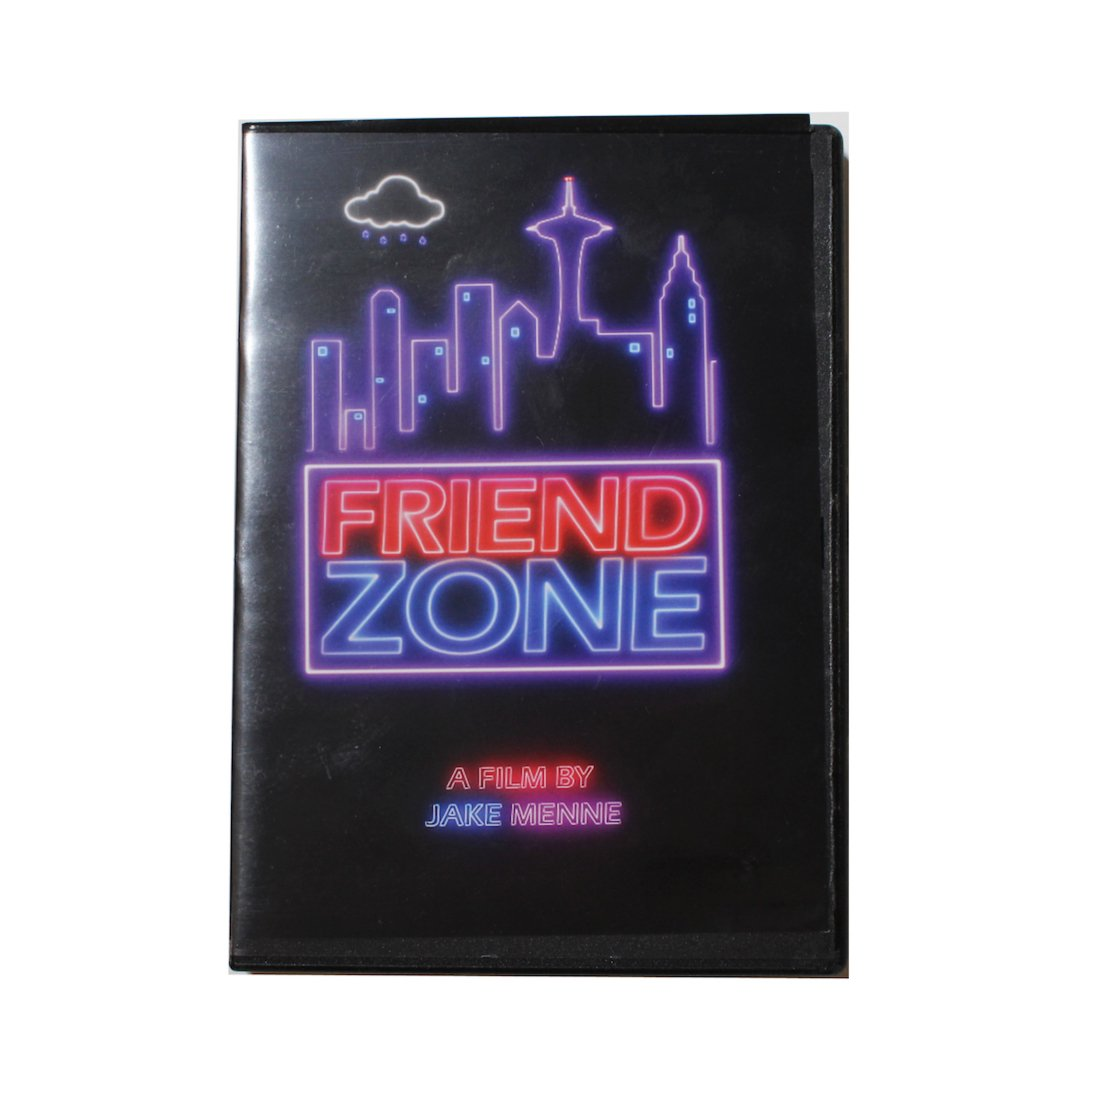 【FRIEND ZONE】- DVD